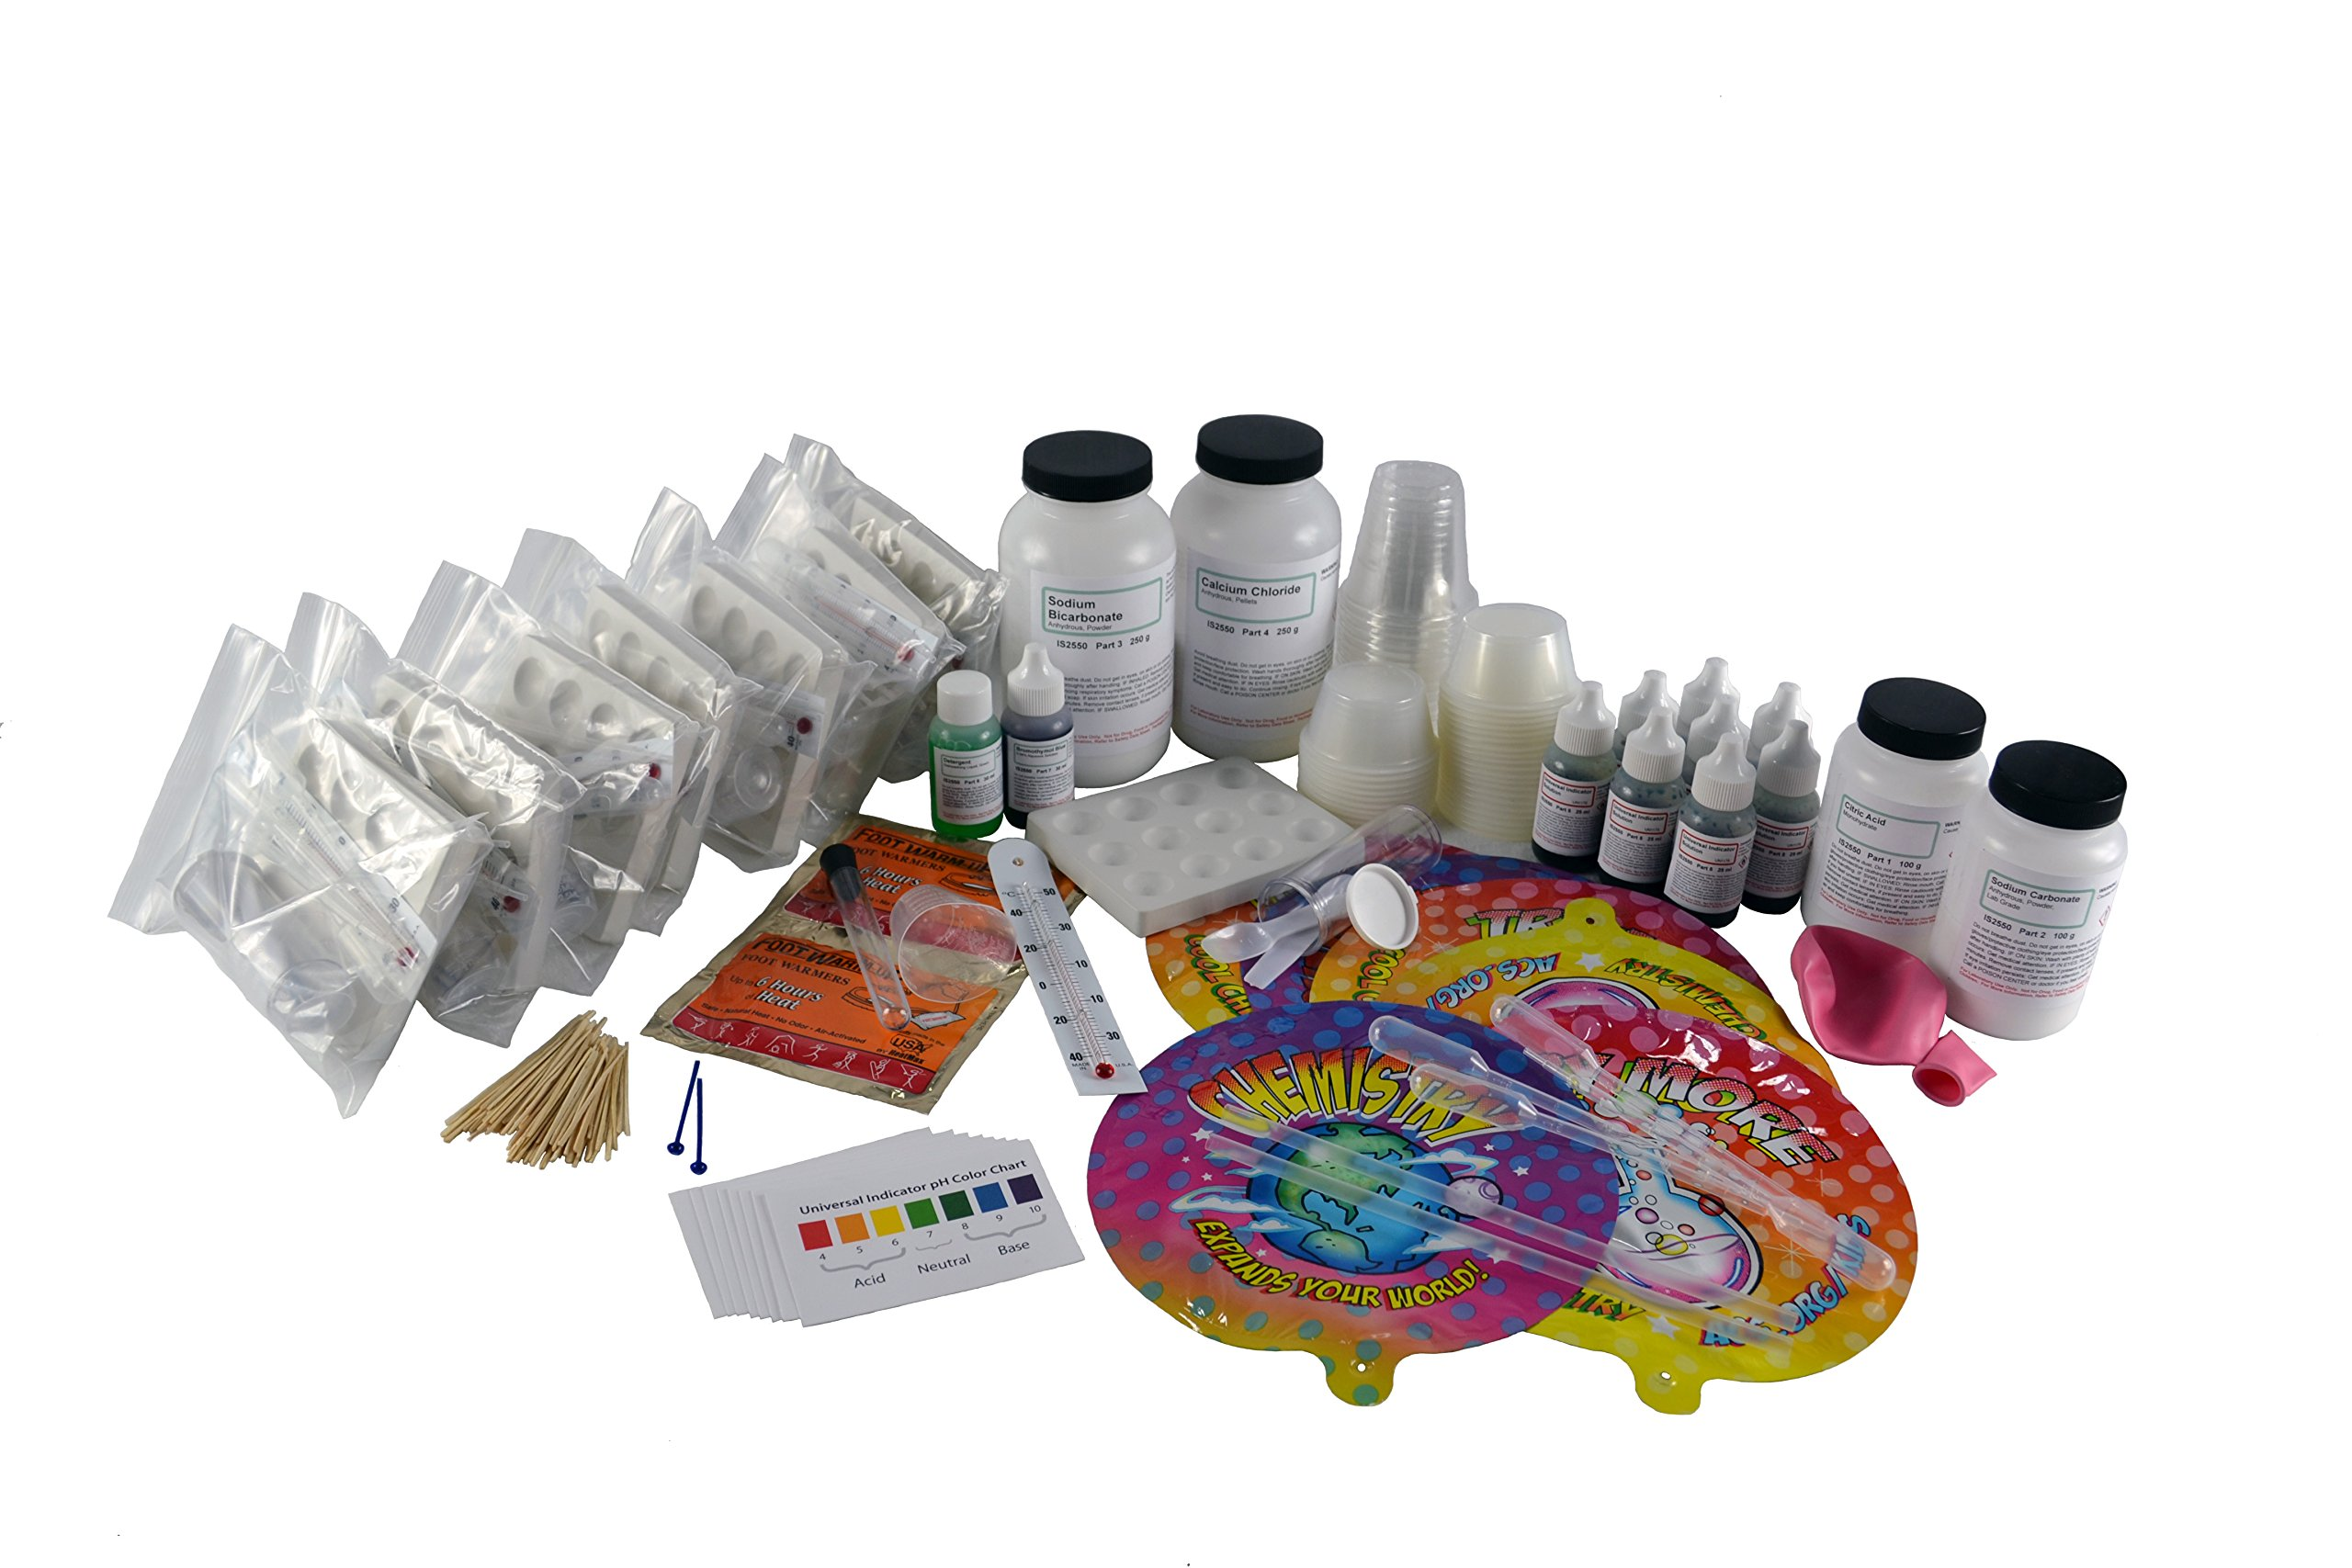 Innovating Science American Chemical Society Chemistry Activity Kit: Investigating Your World (Supplies for 8 Groups) by Innovating Science (Image #1)